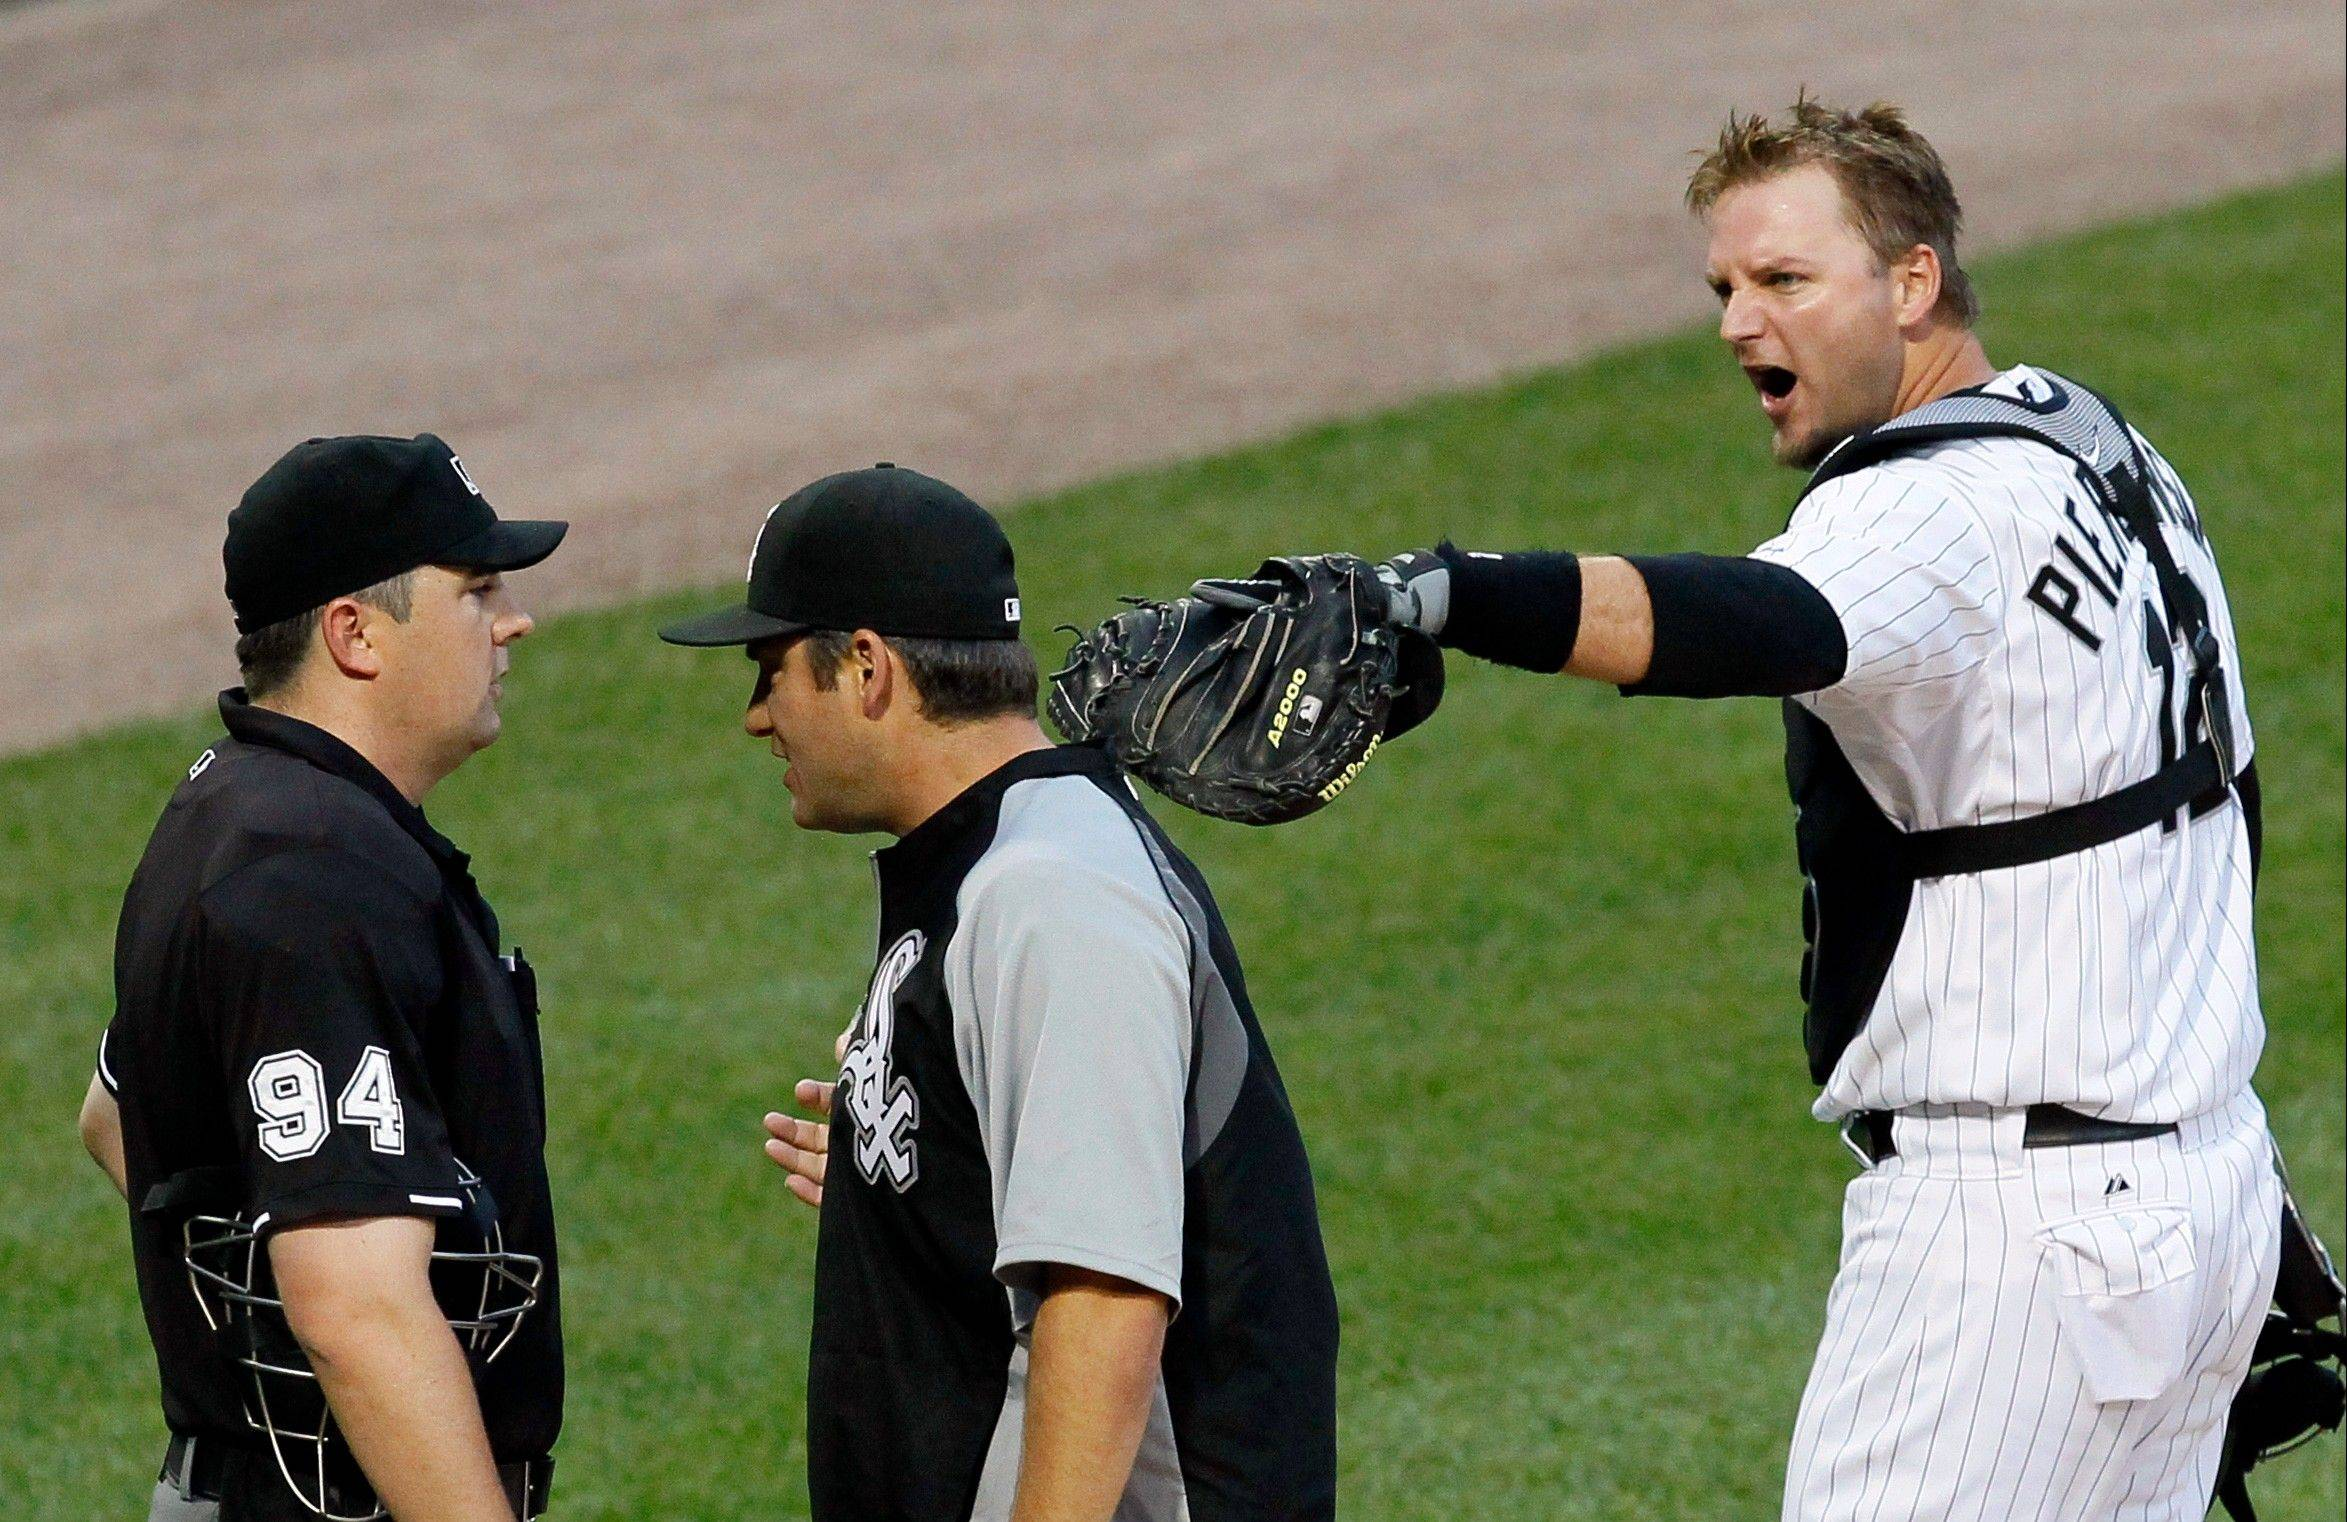 White Sox catcher A.J. Pierzynski, an extremely popular figure on the South Side who brings his unique brand of skills and pugnacious attitude to every game, will be a free agent after this season. In this photo taken Saturday, Pierzynski has just been ejected from the game against the Mariners by plate umpire Lance Barrett, while White Sox manager Robin Ventura carries on the argument.